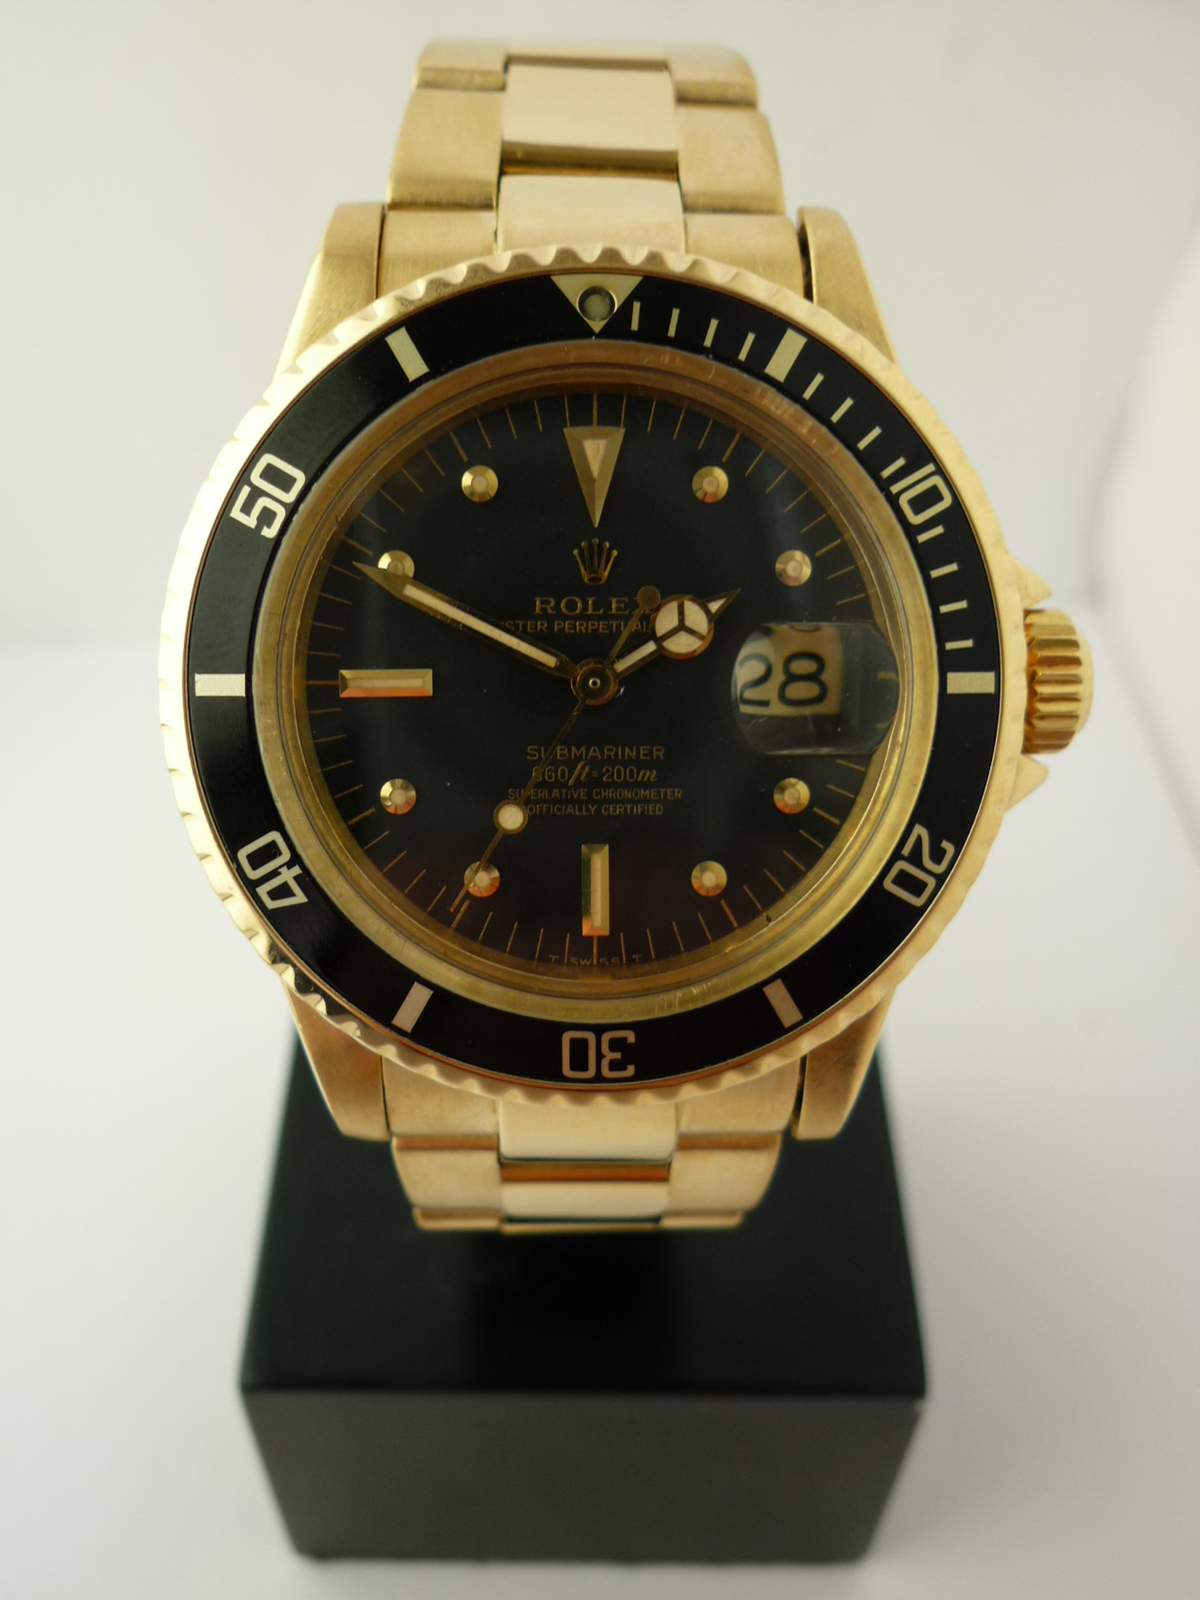 Rolex Submariner 1680/8 18ct (1978)